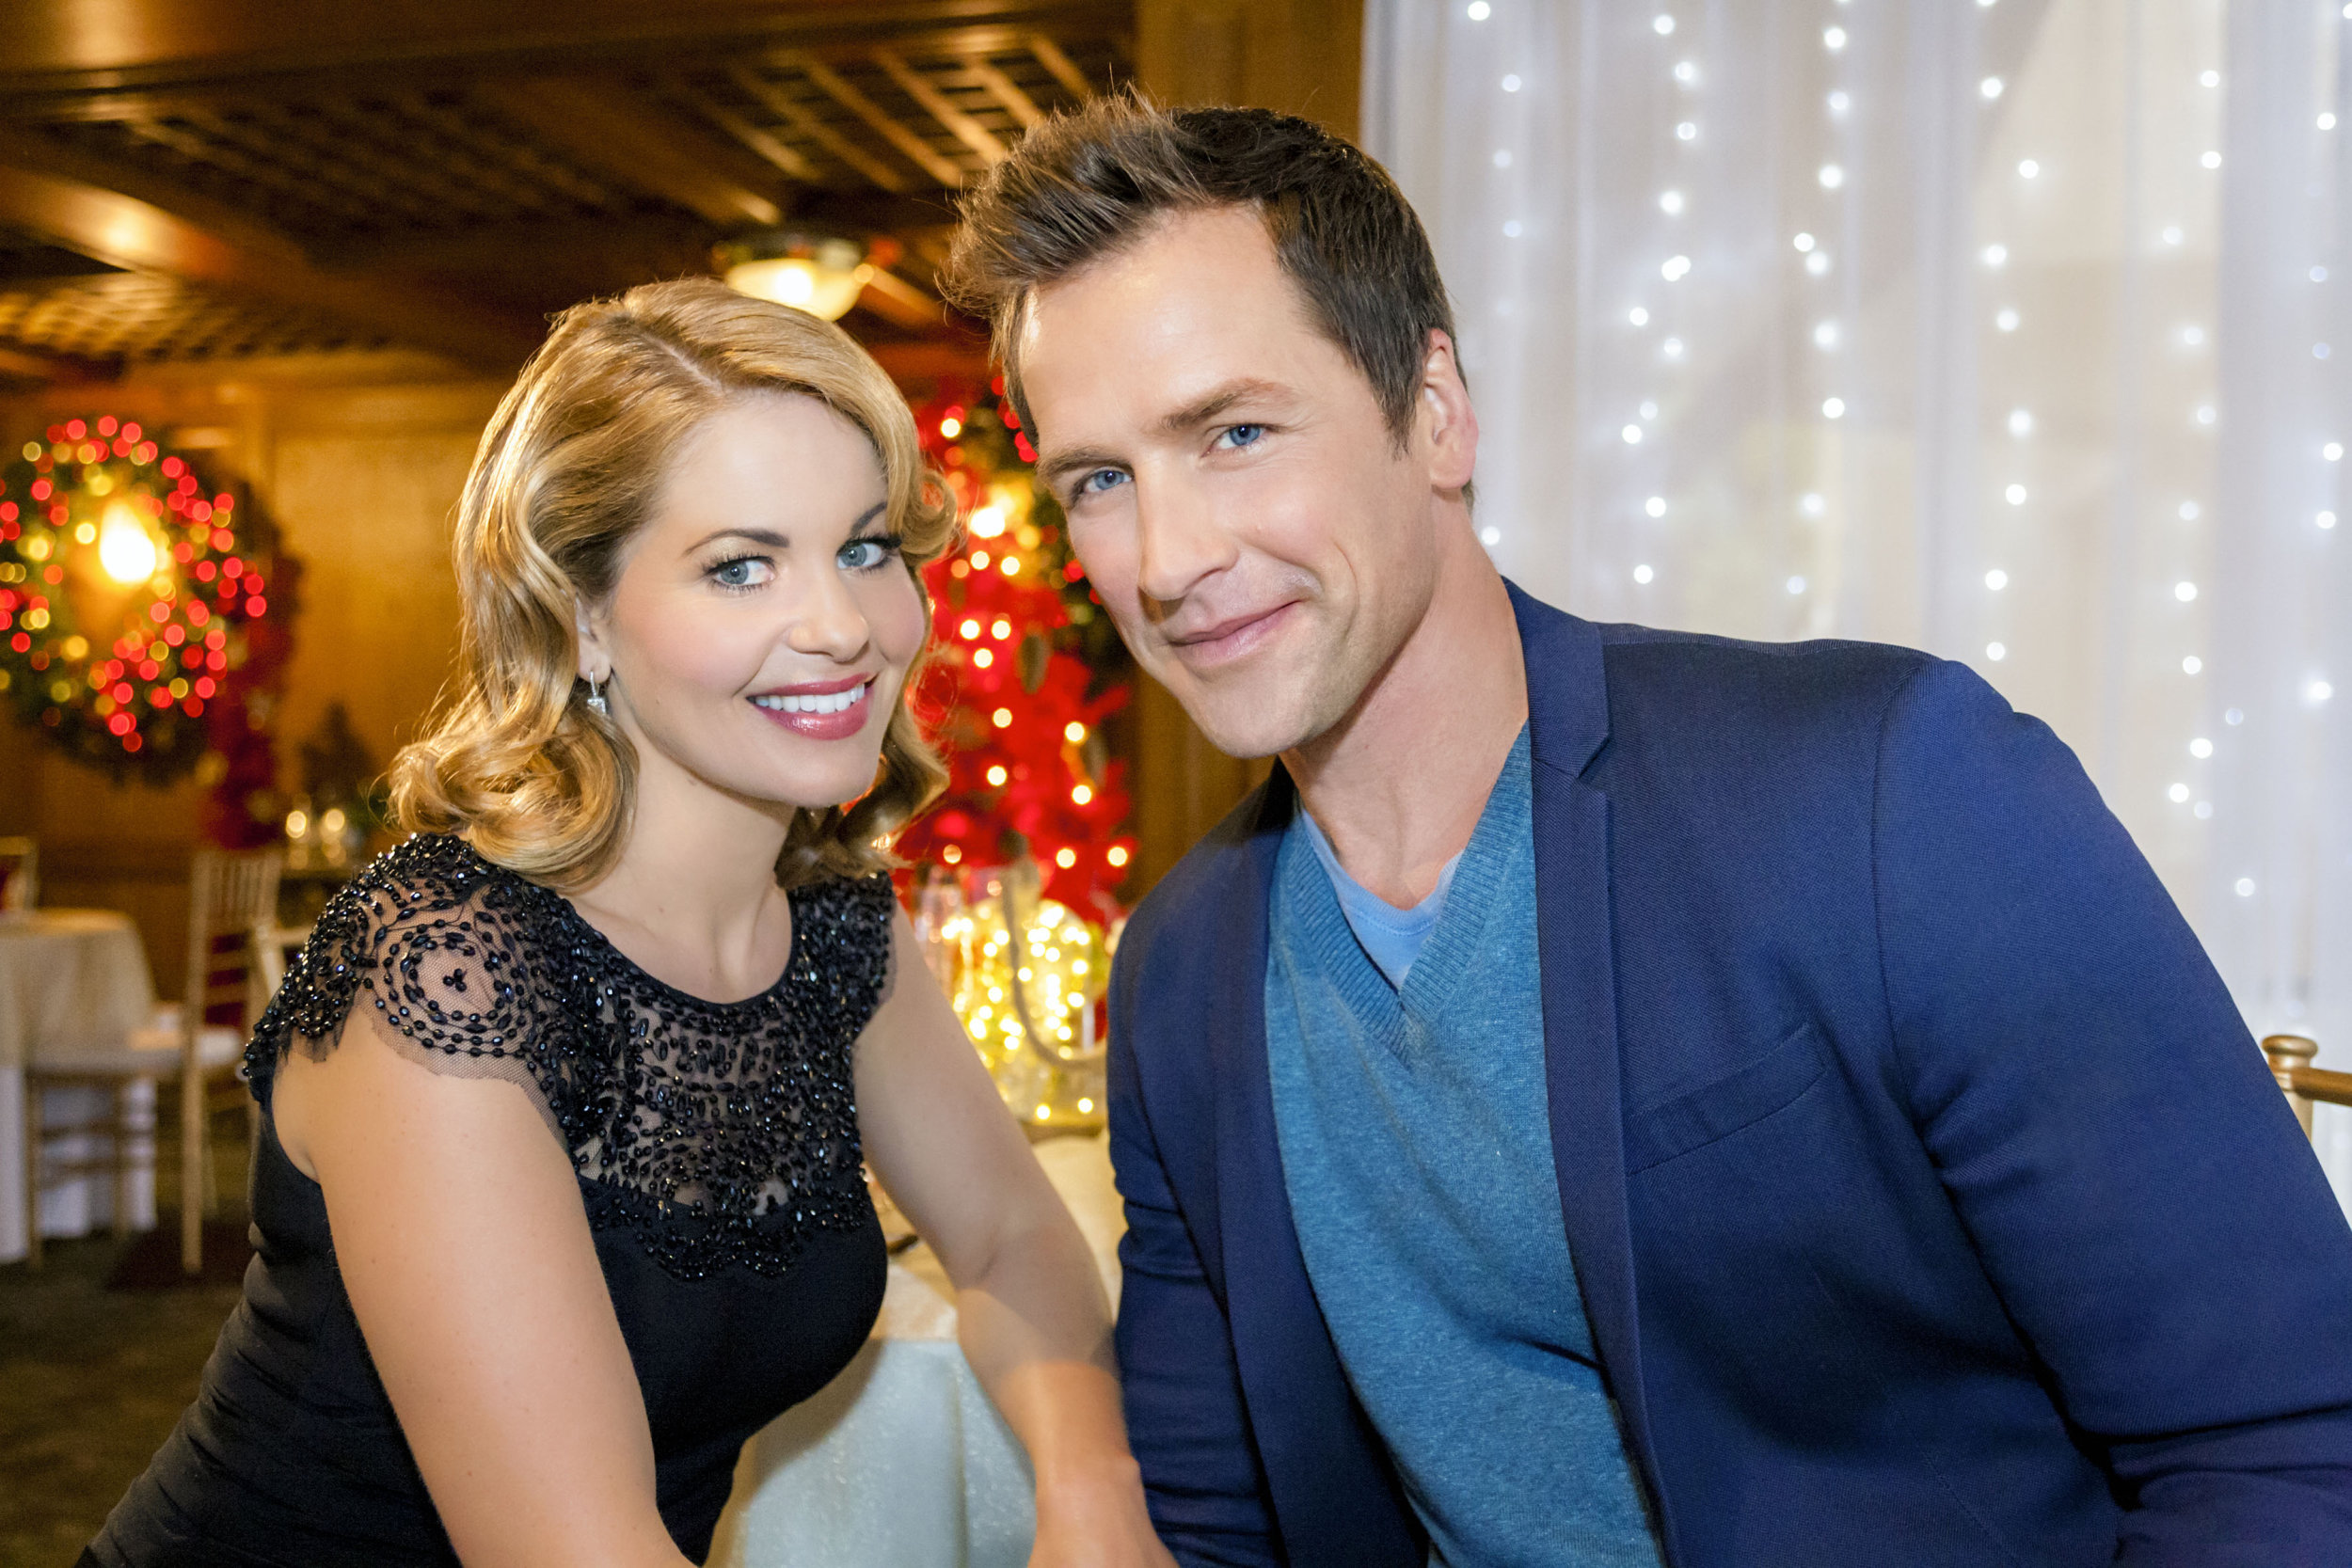 10 things you'll see in hallmark christmas movies - kristen hewitt